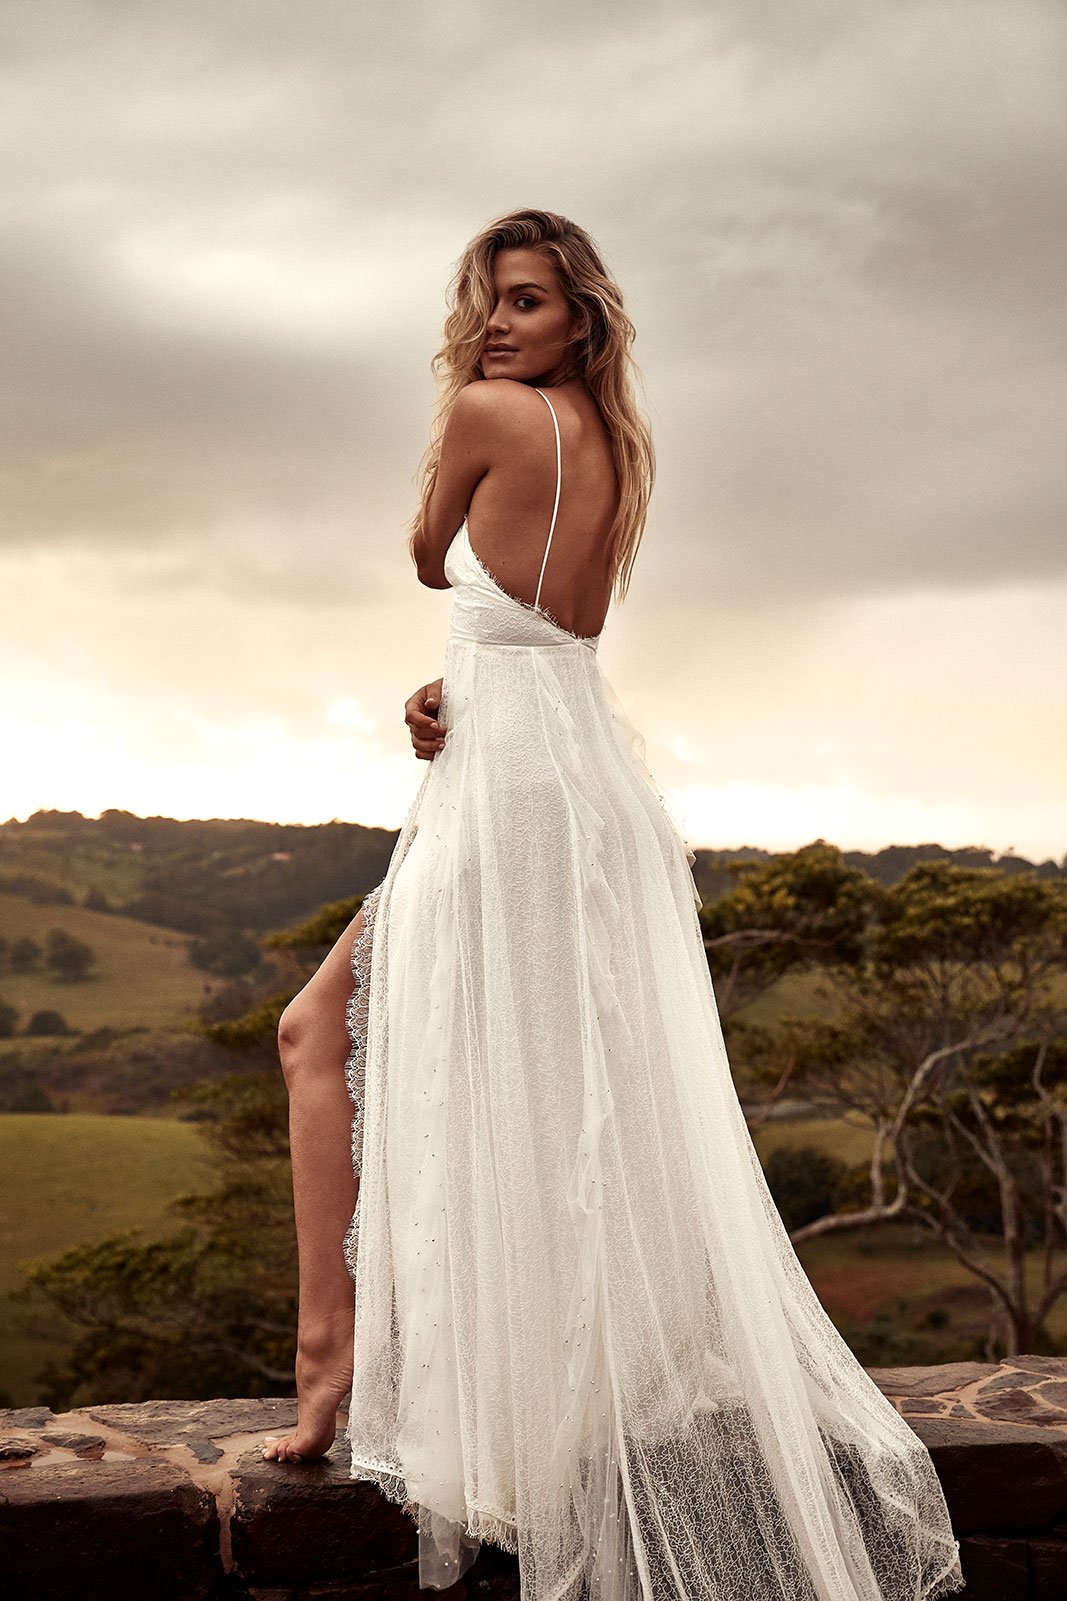 Song-Gown-Grace-Loves-Lace-La-Bamba-Collection-1-Low-Res.jpg